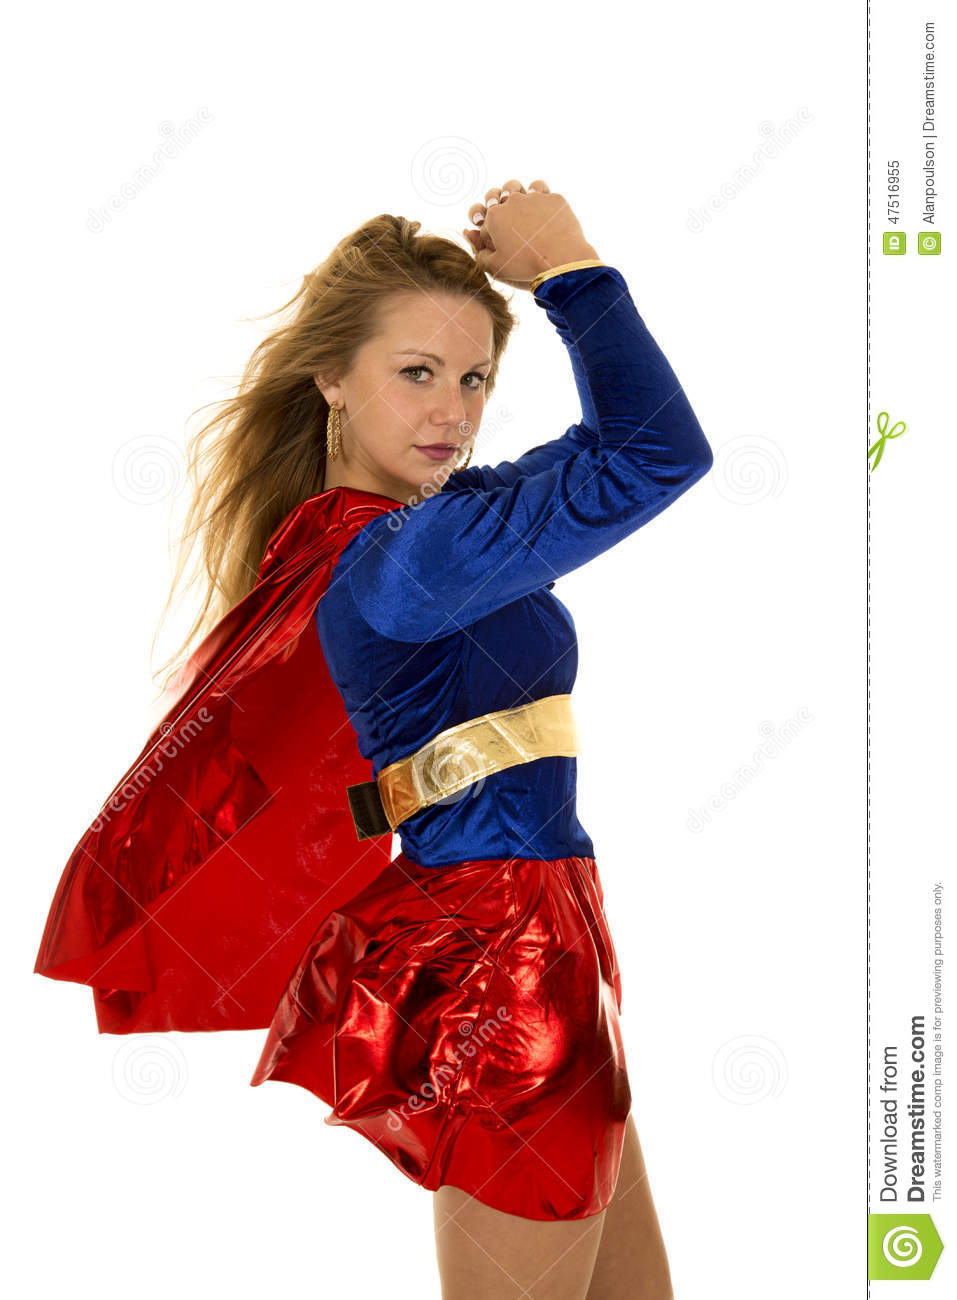 Woman super hero red cape blowing hands up